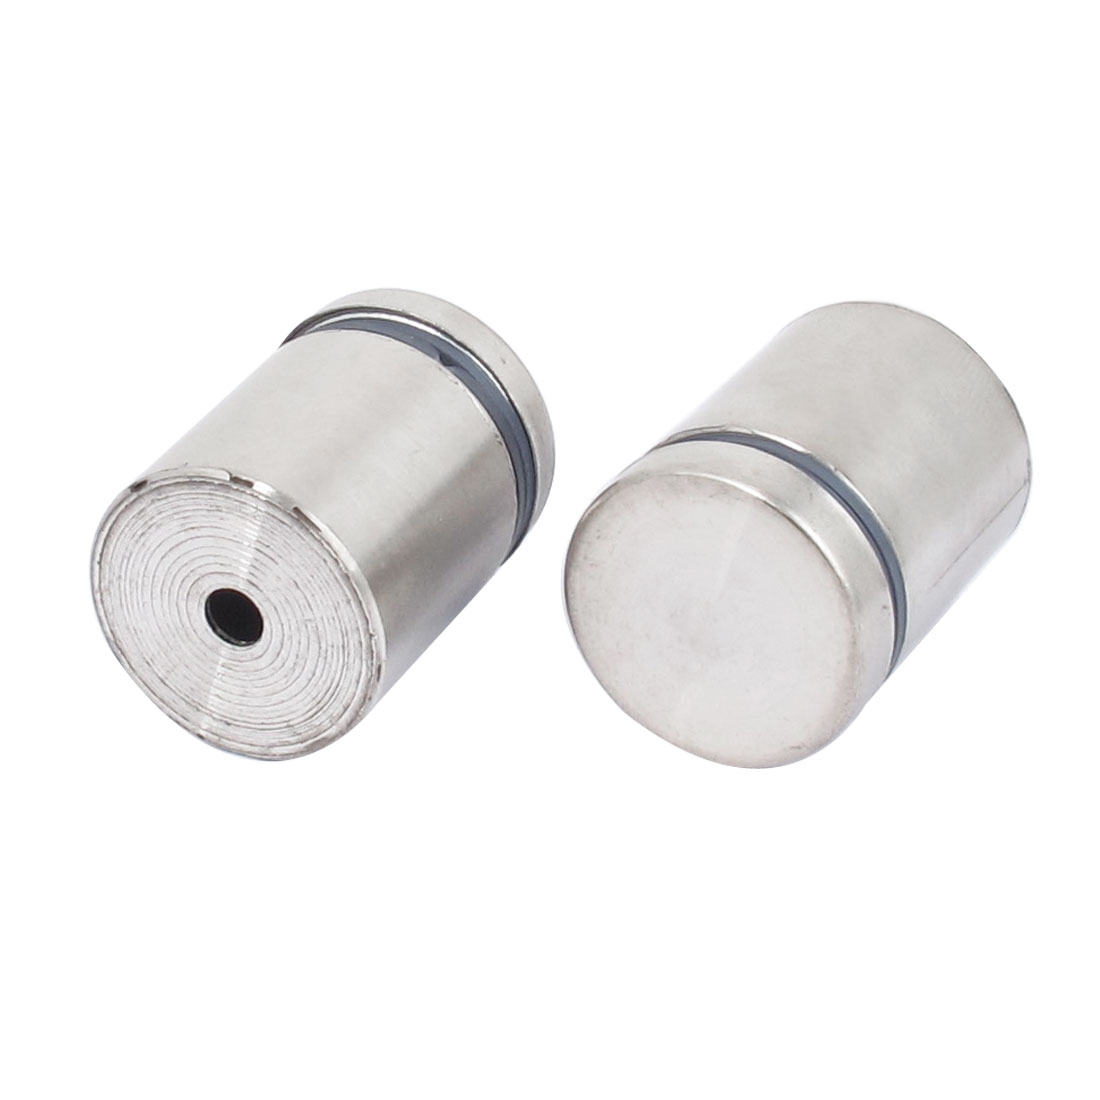 25mm x 30mm Stainless Steel Advertising Frameless Glass Standoff Pin Clamp 2pcs